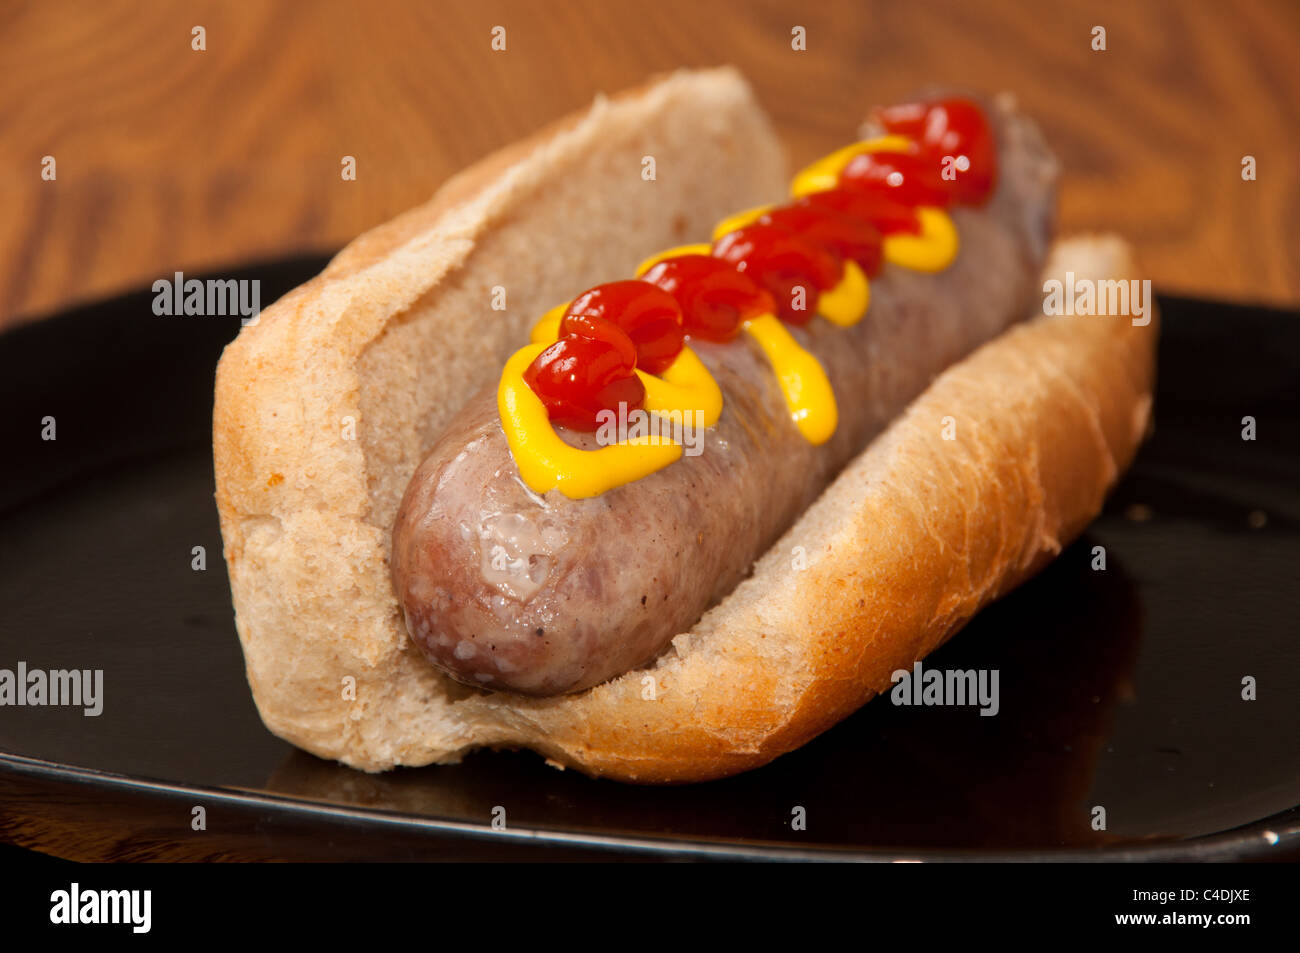 Cooked Bratwurst on a bun topped with Mustard and Ketchup Stock Photo